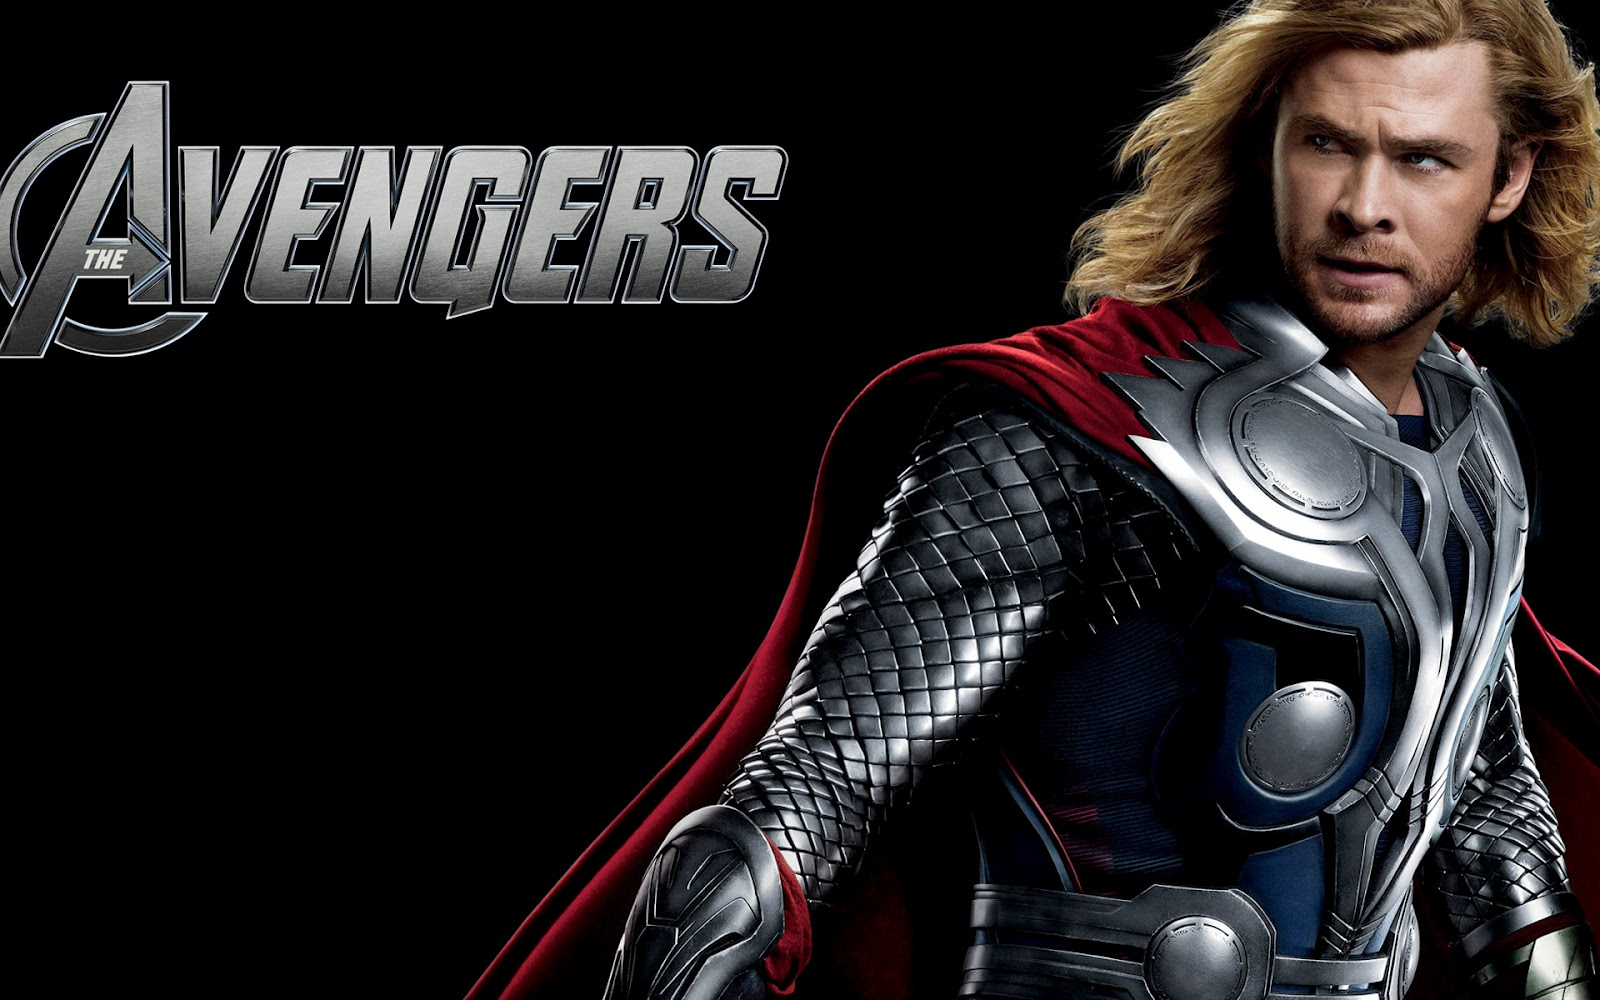 The Avengers Wallpapers ~ Gadgets Talk and Life